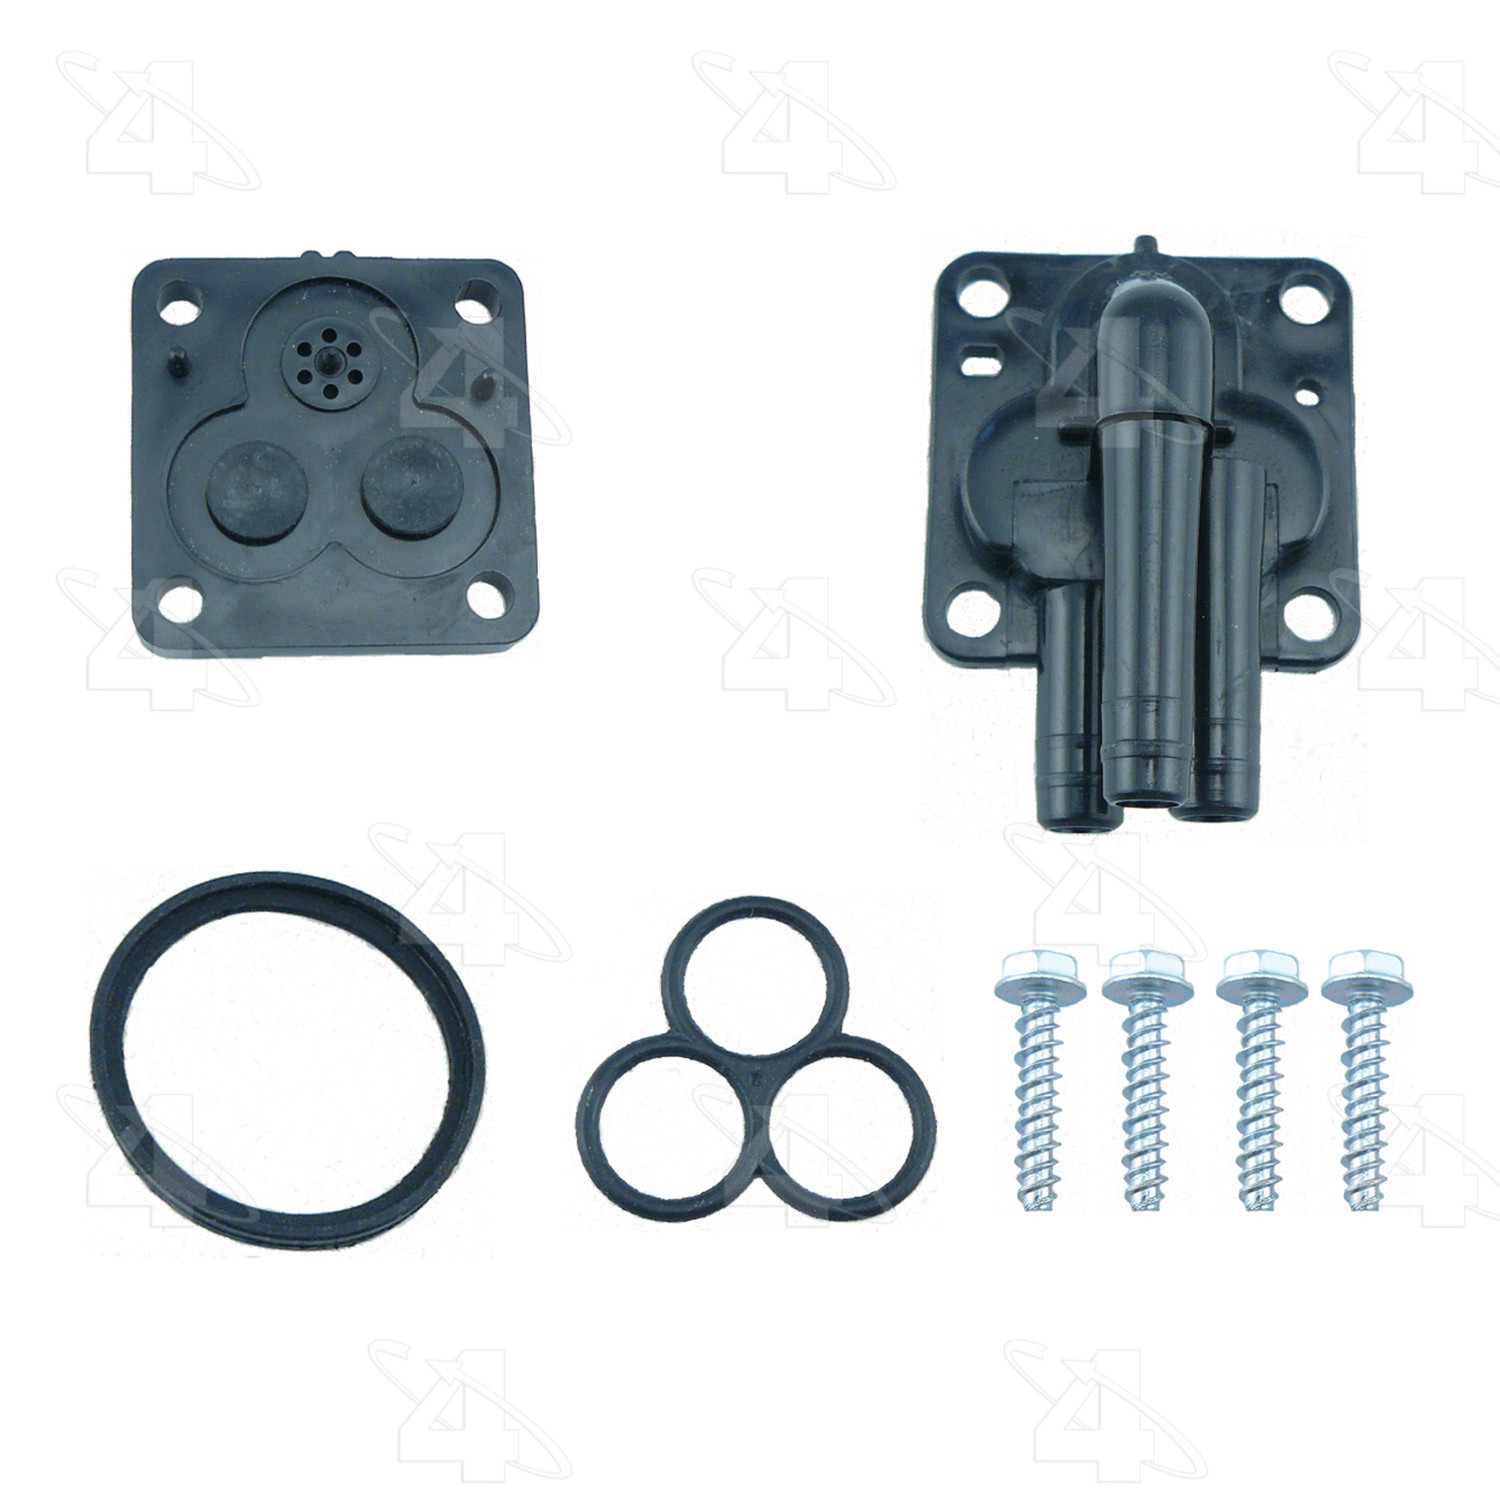 PARTS MASTER/ACI - Washer Pump Kit (Front) - P67 172359